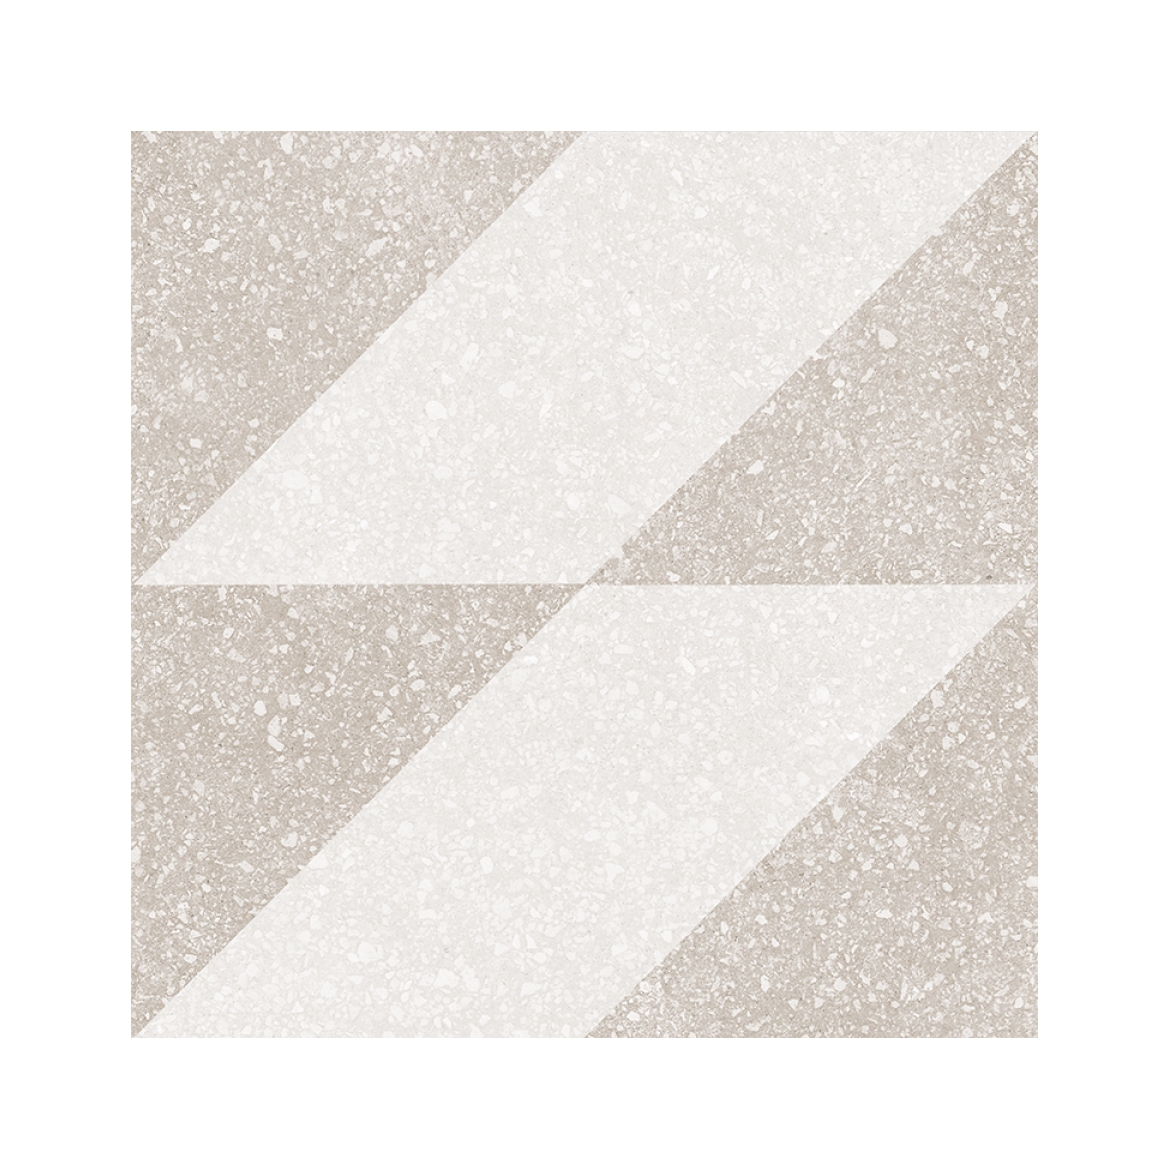 https://cerdesign.pl/1883-large_default/p430-equipe-micro-elements-taupe-20x20.jpg